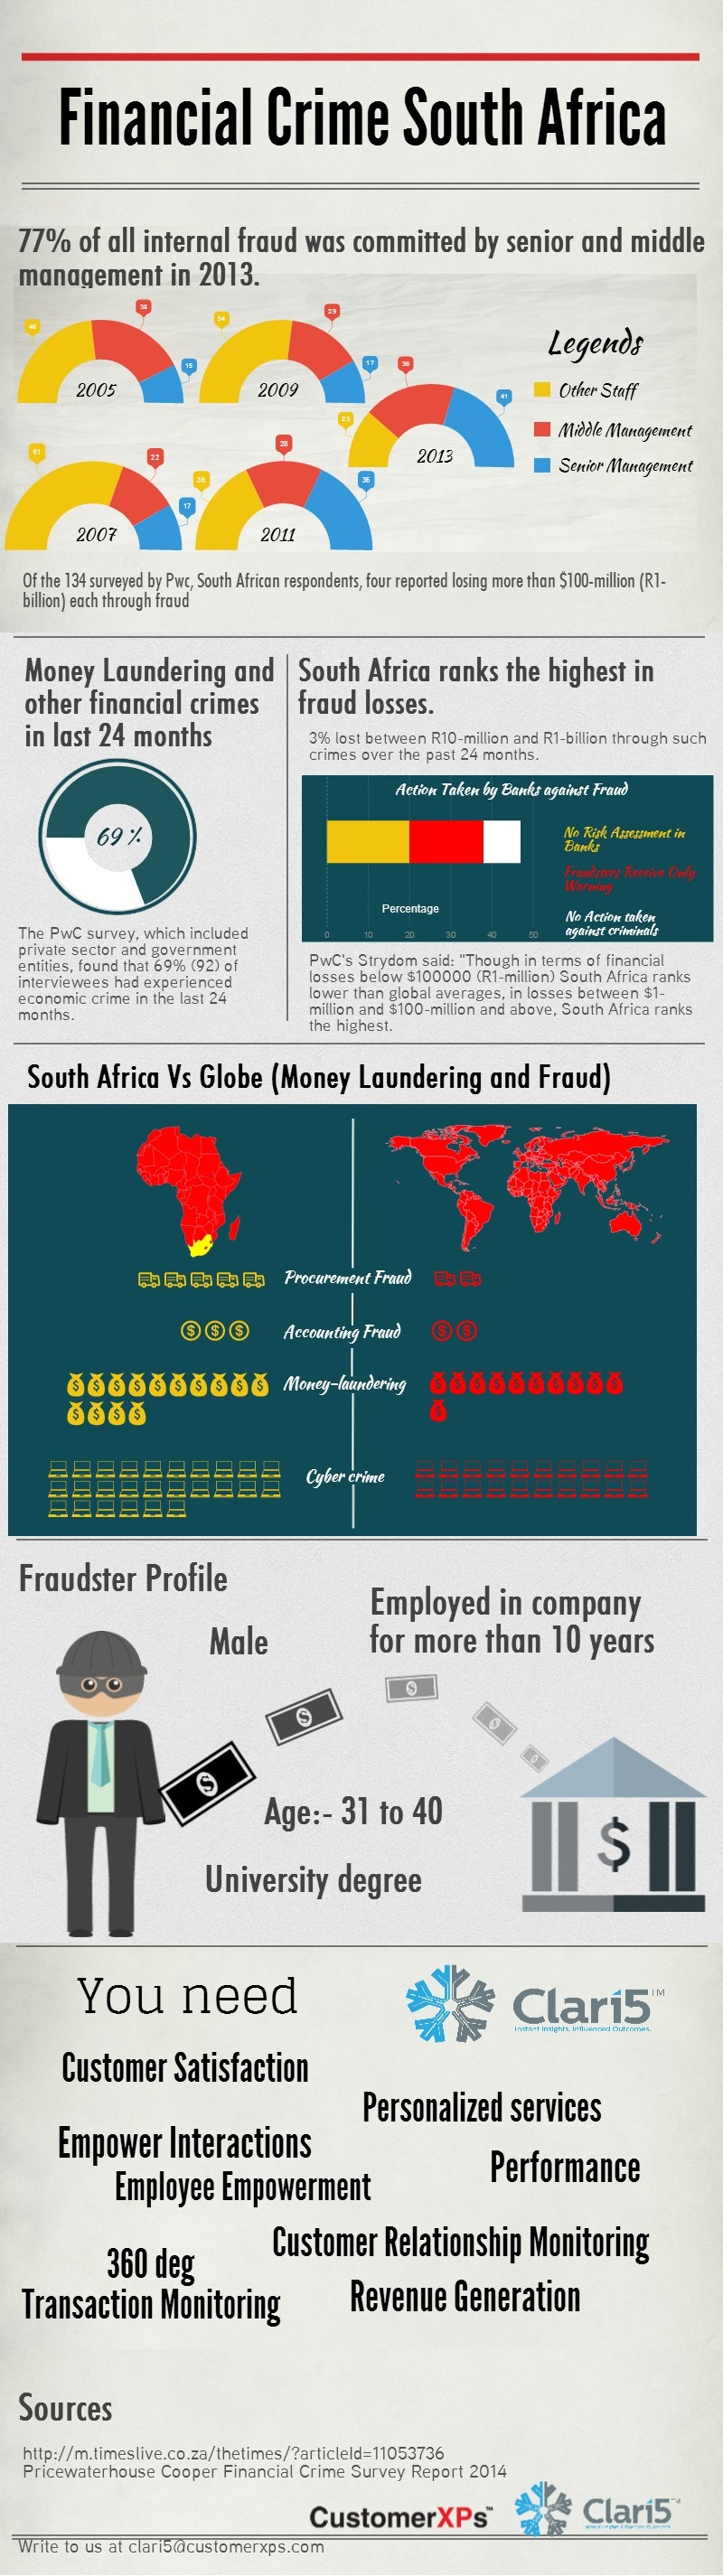 Financial Crime in South Africa is overwhelmingly omnipresent. According to Christopher Malan, Head of Financial Intelligence Centre, South African banks have to work towards being more compliant in combating financial crime i.e. Terrorism Financing and Money Laundering. Four big banks of South Africa were fined for R125 million by the Reserve Bank for failing being compliant to the regulations. Banks are highly criticized for forming cartels, and behaving monopolistically in the African region. This is one of the various reasons for high financial crime rate in South Africa.